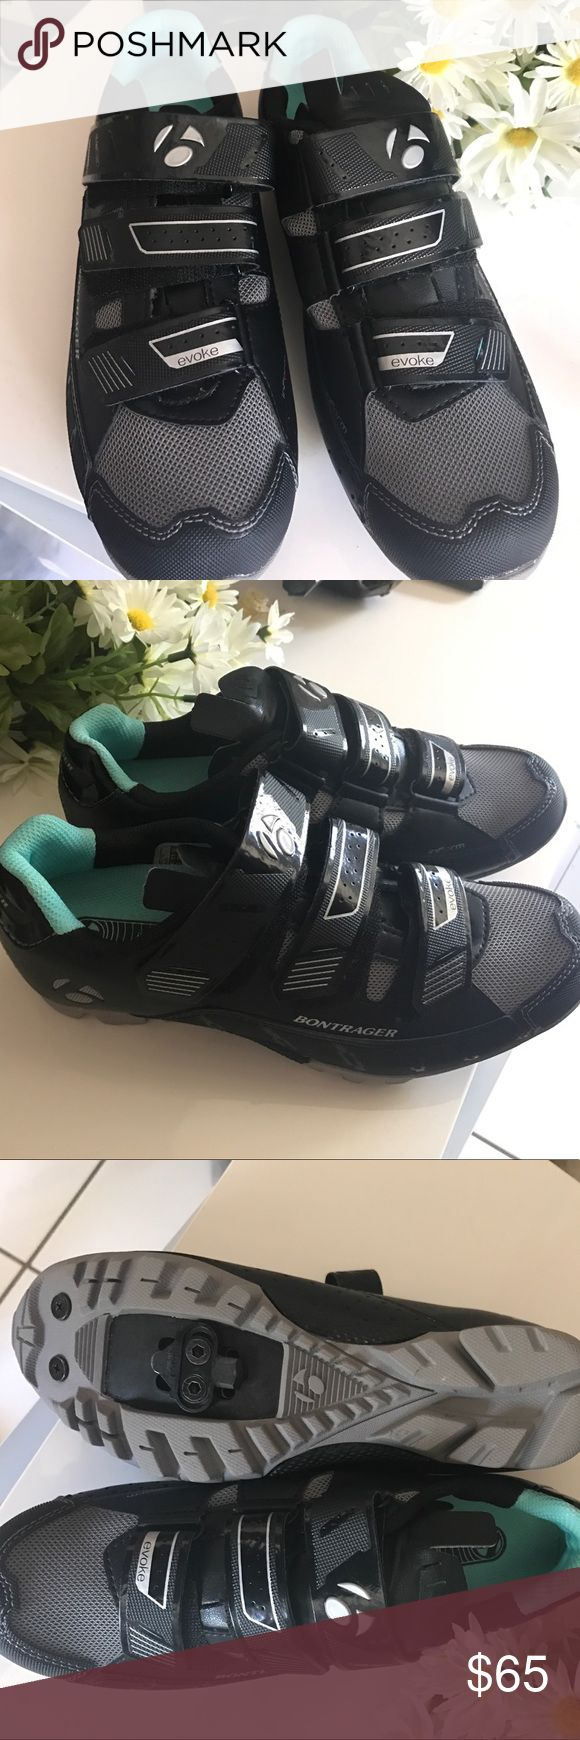 Bontranger evoke MTB shoes Bontrager evoke mountain show with inform footbed insoles. Includes clips to clip into your bike. Perfect for taking cycling classes that require you to clip into the bike. Also a great shoe for hiking. Like new condition bontrager Shoes Athletic Shoes